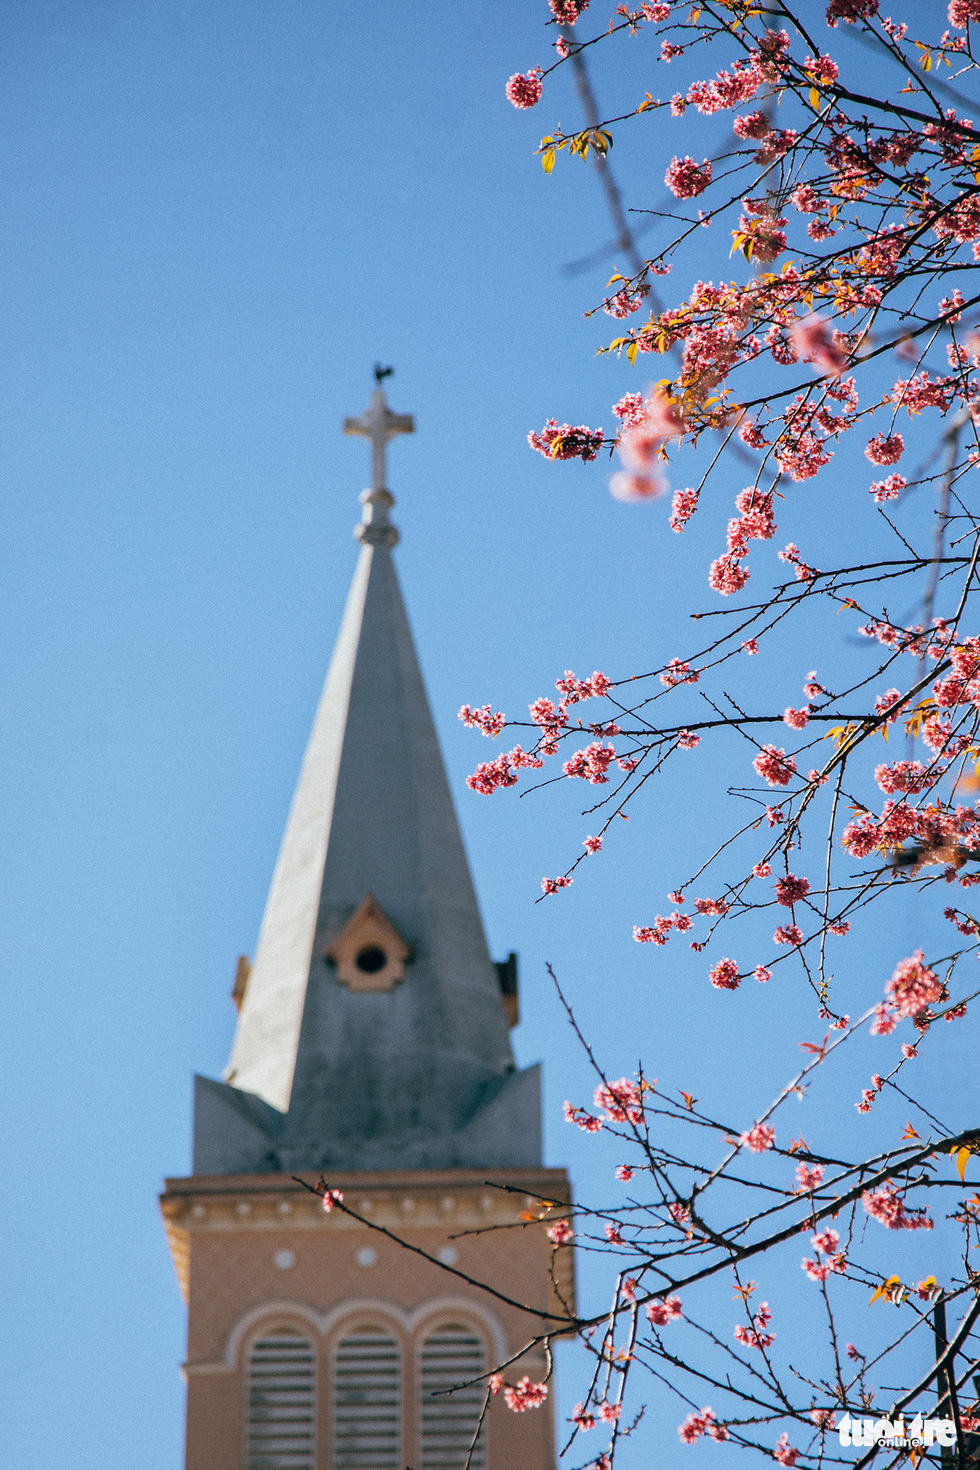 On Tet 29, the cherry blossoms dyed the city of sad pink - Photo 4.